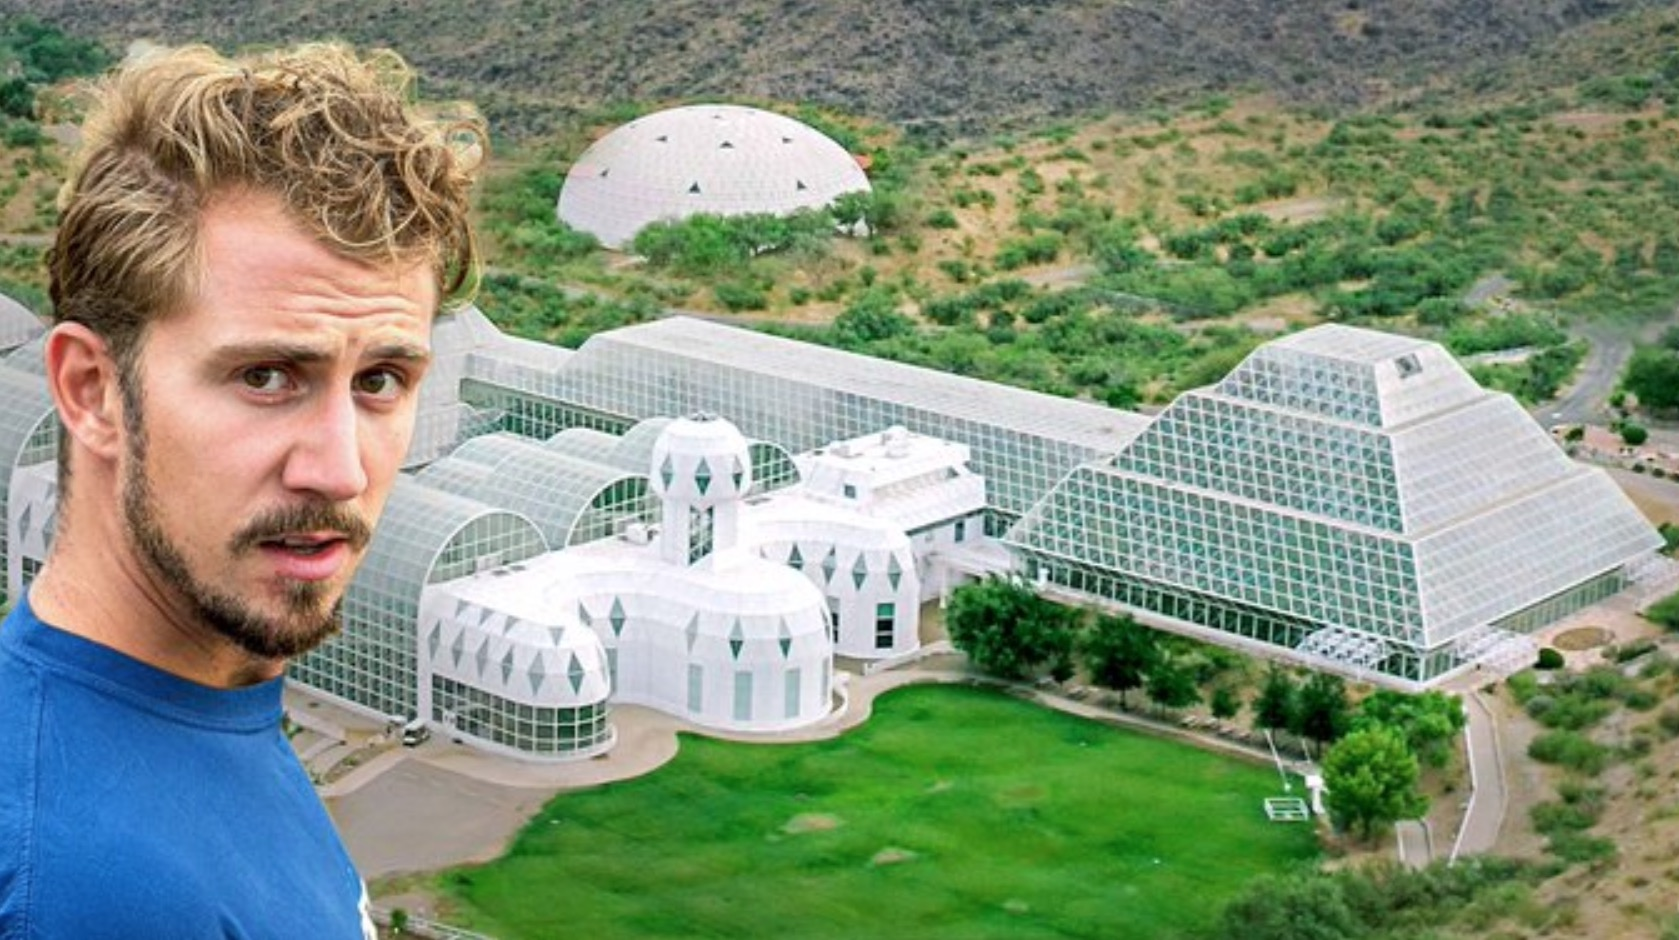 YouTubers Go Inside The $200 Million Biosphere 2 Dome Which Was Engineered To Replicate The Earth's Environment In Space - Digg